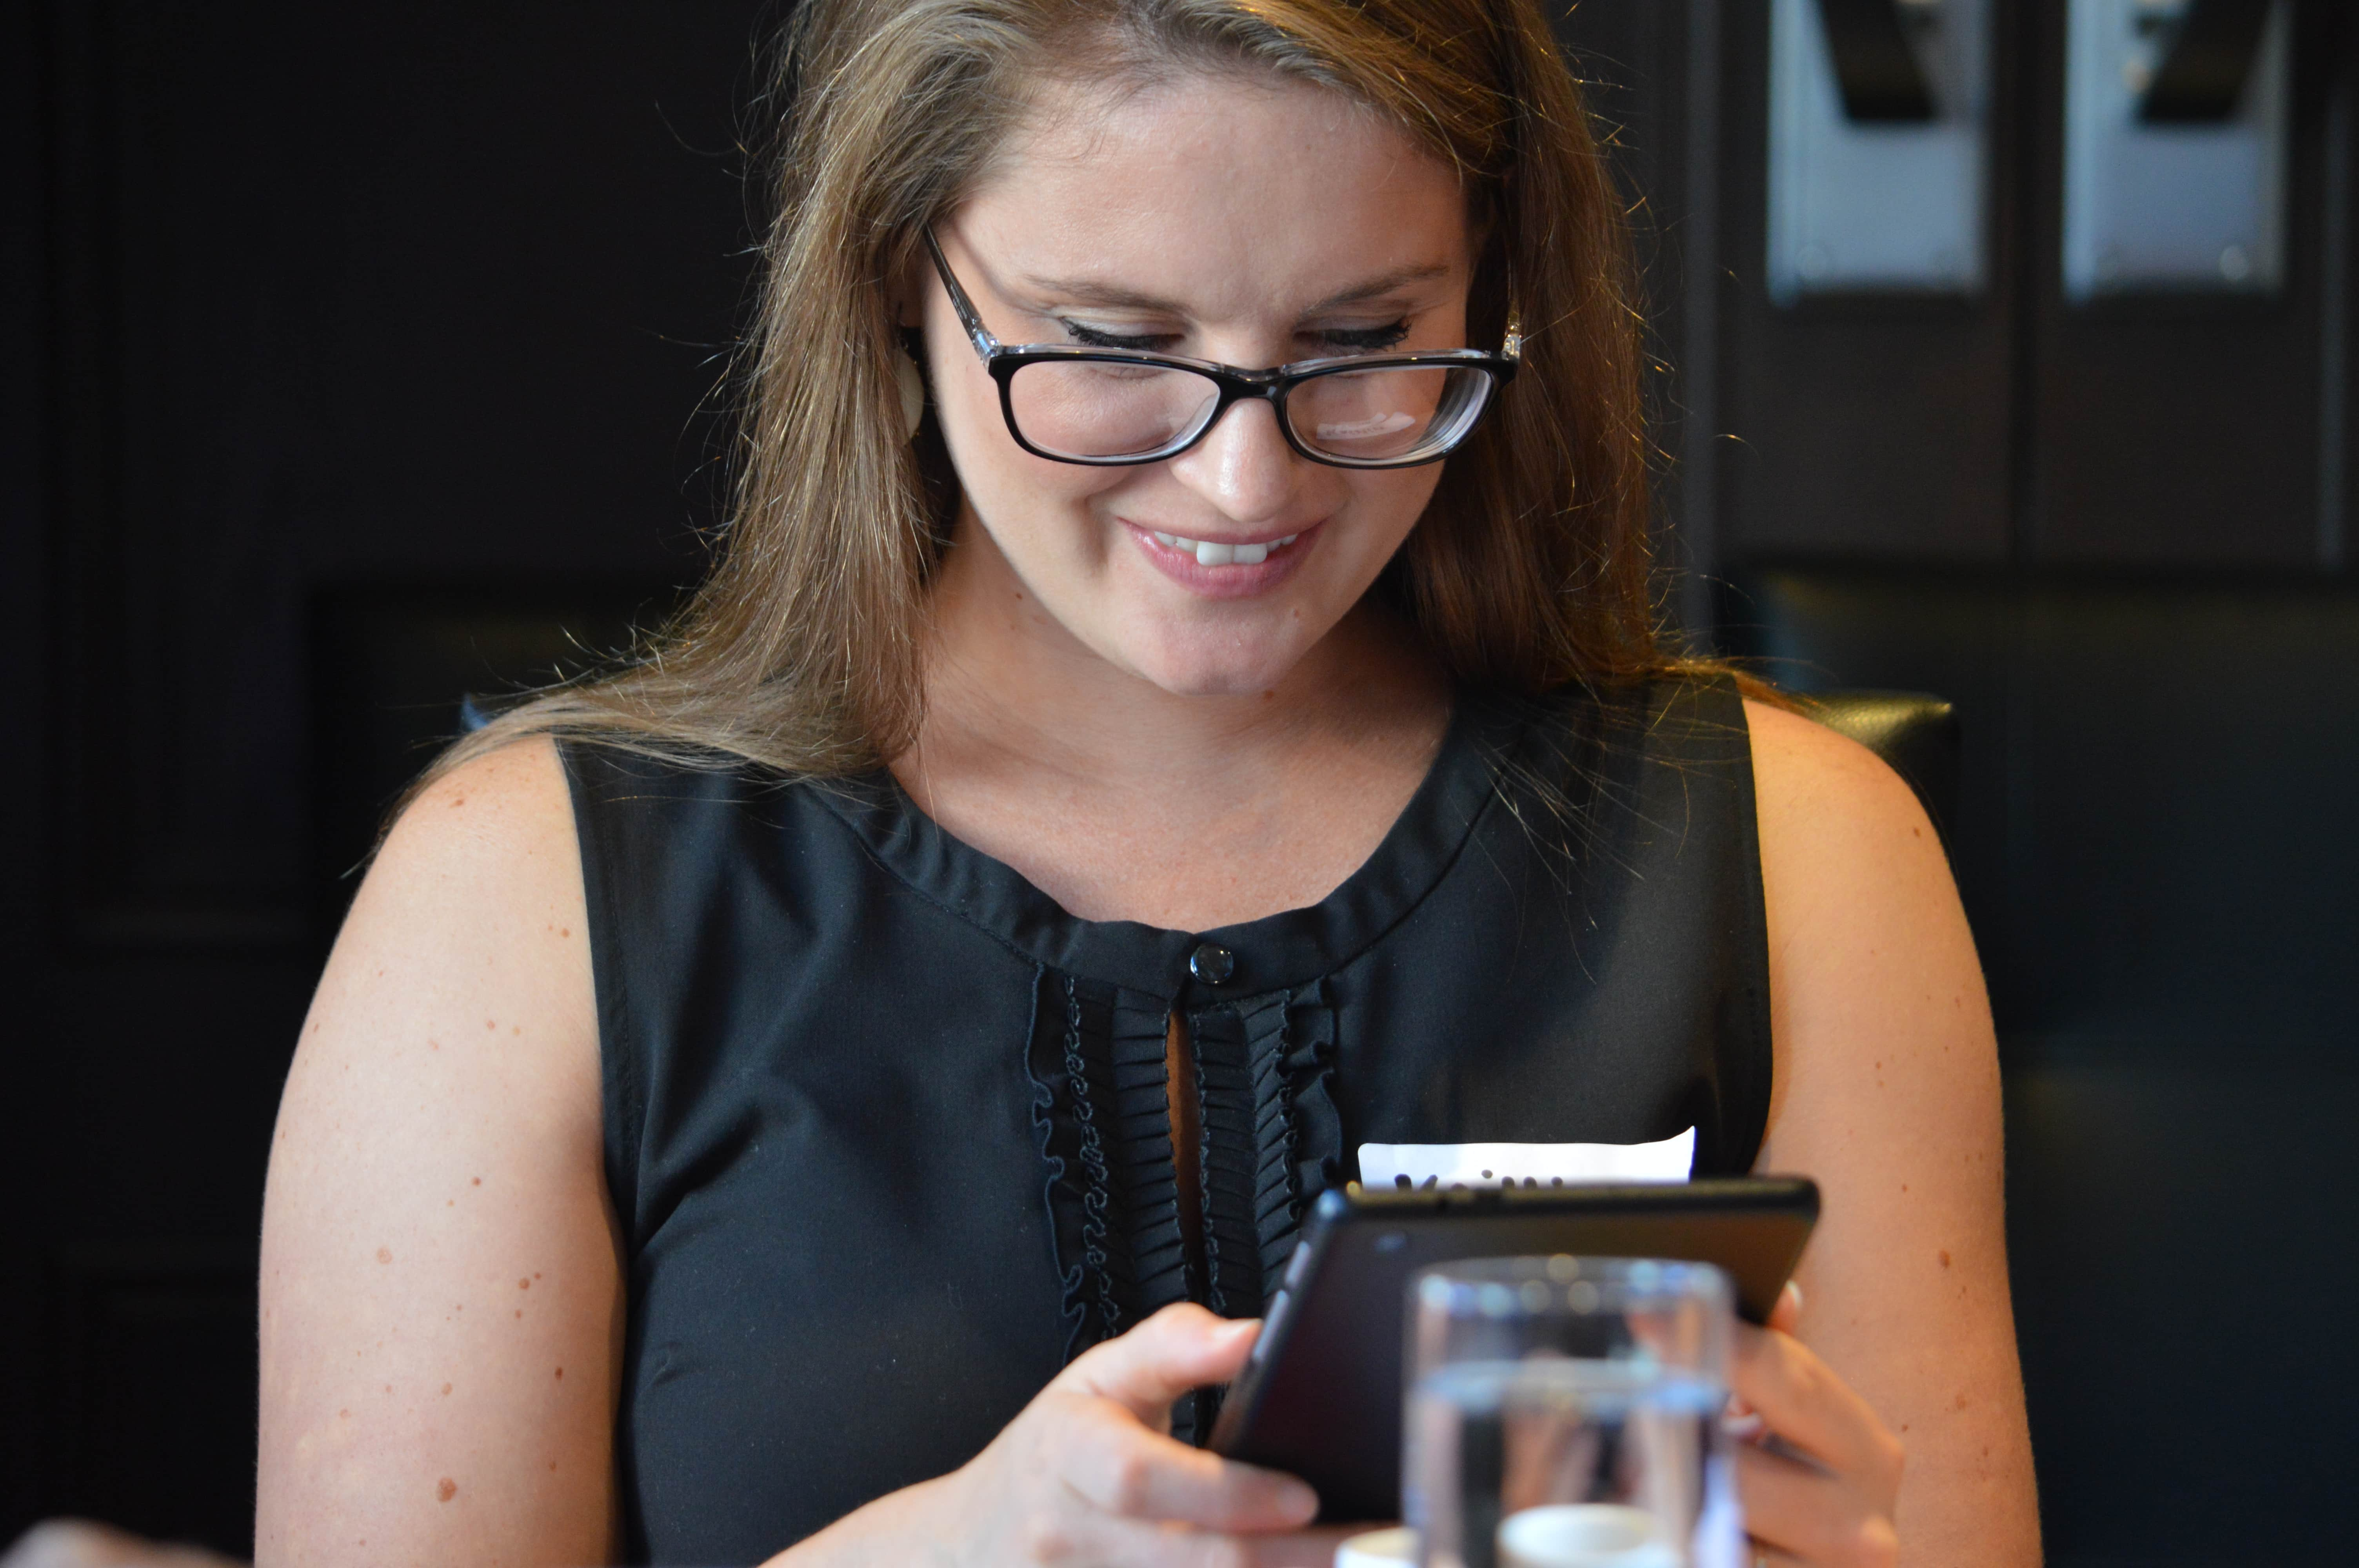 Happy woman looking at tablet